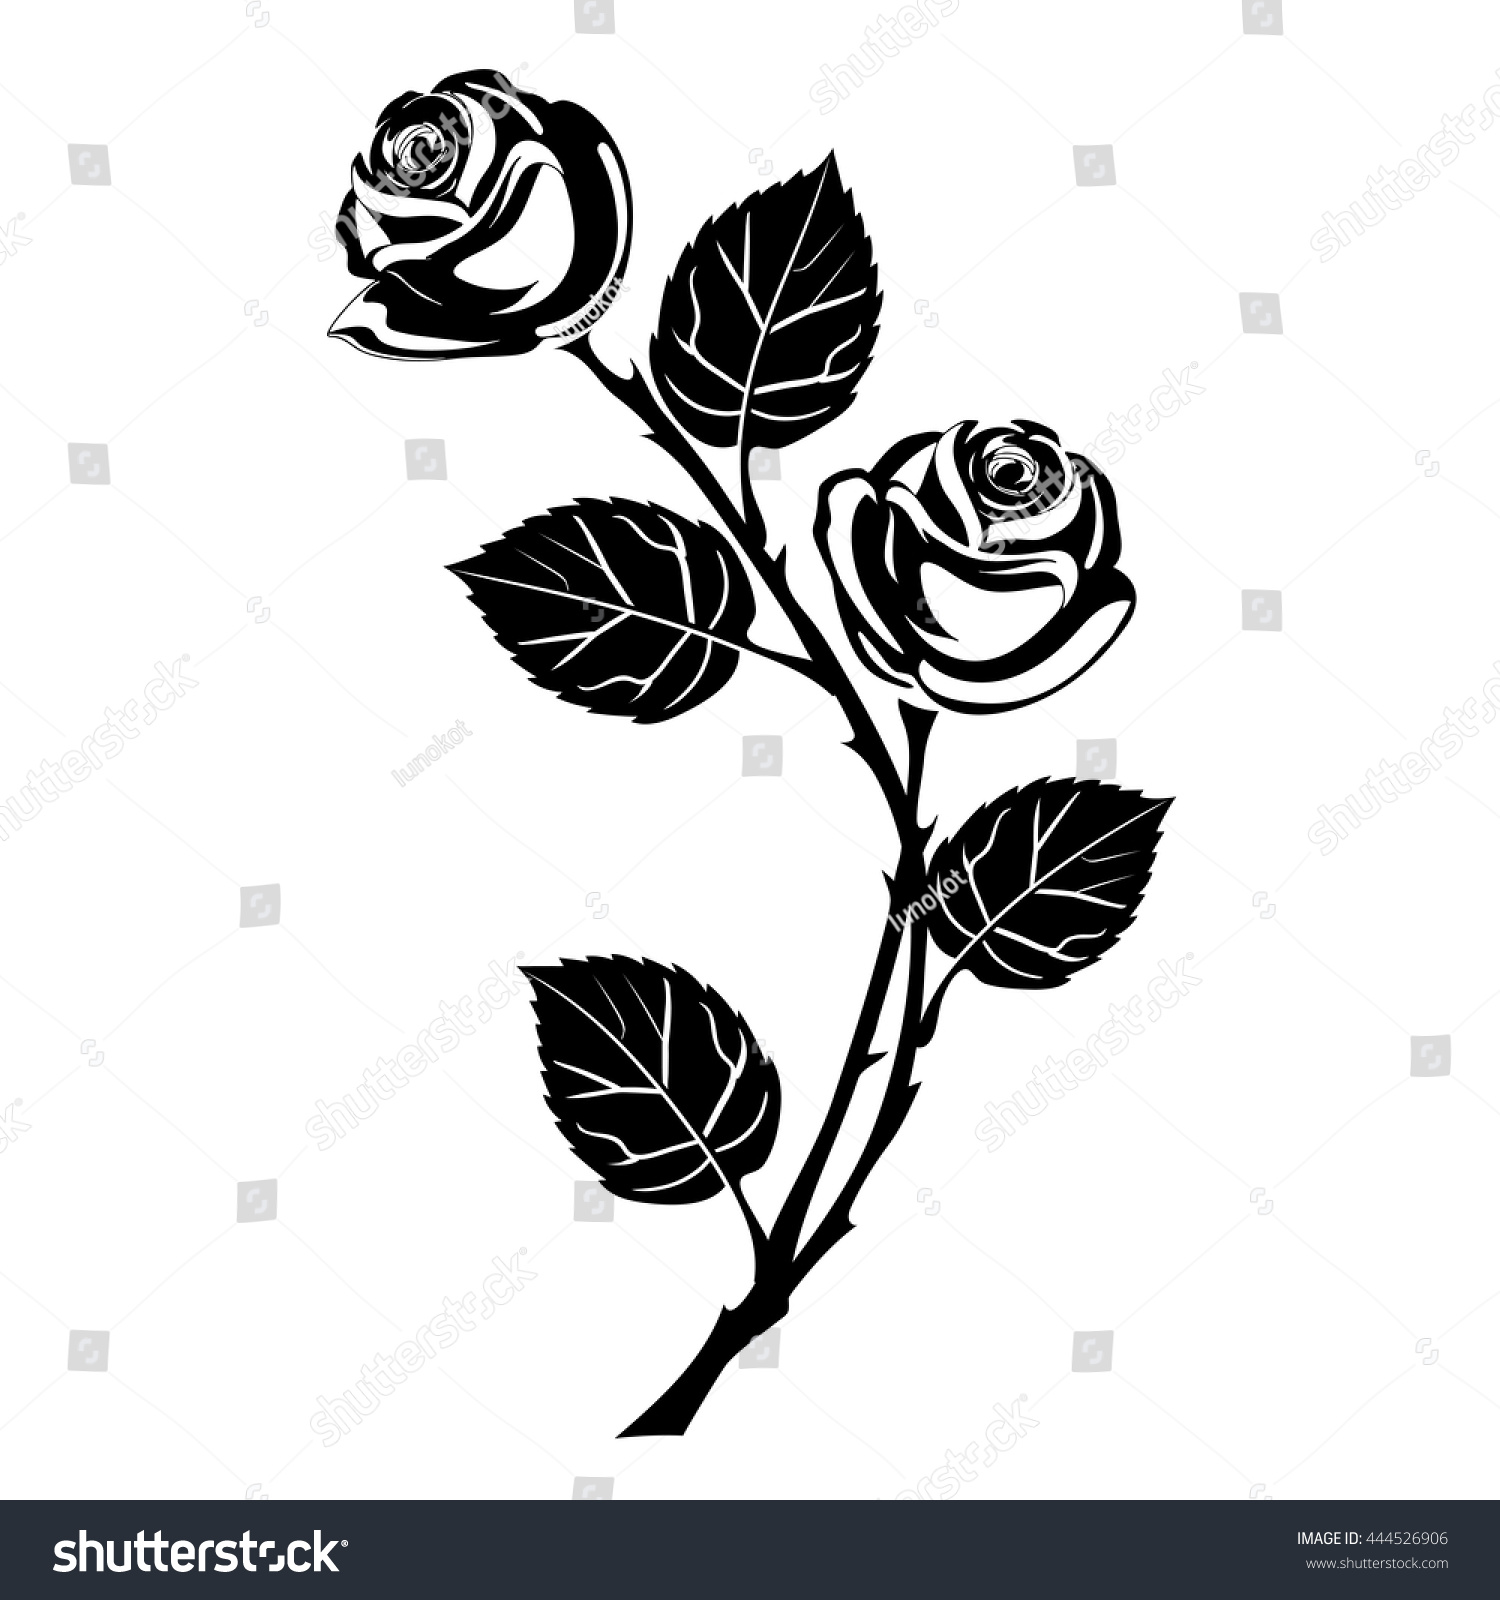 Rose Tattoo Black Silhouette Branch Flowers Stock Vector ...